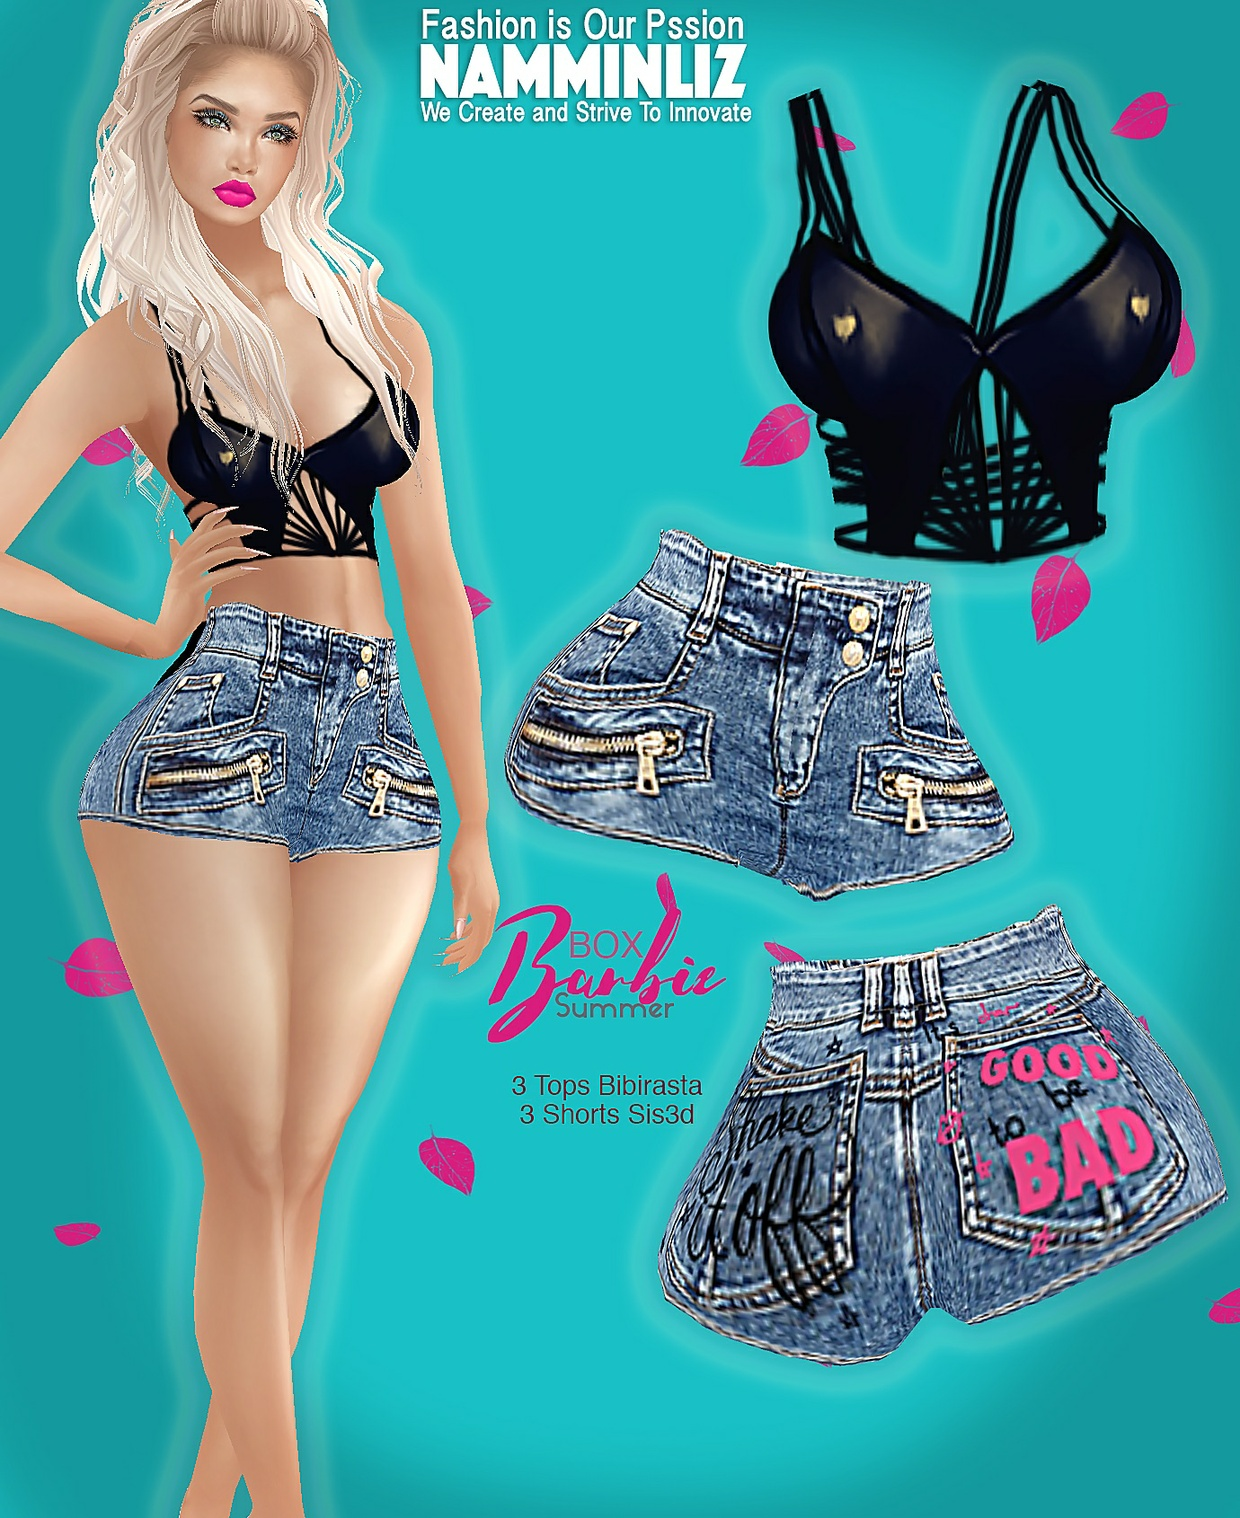 B O X Summer Barbie 4Sis3d Shorts + 4Bibirasta Tops w/normal resell right Limited to 5 Customers